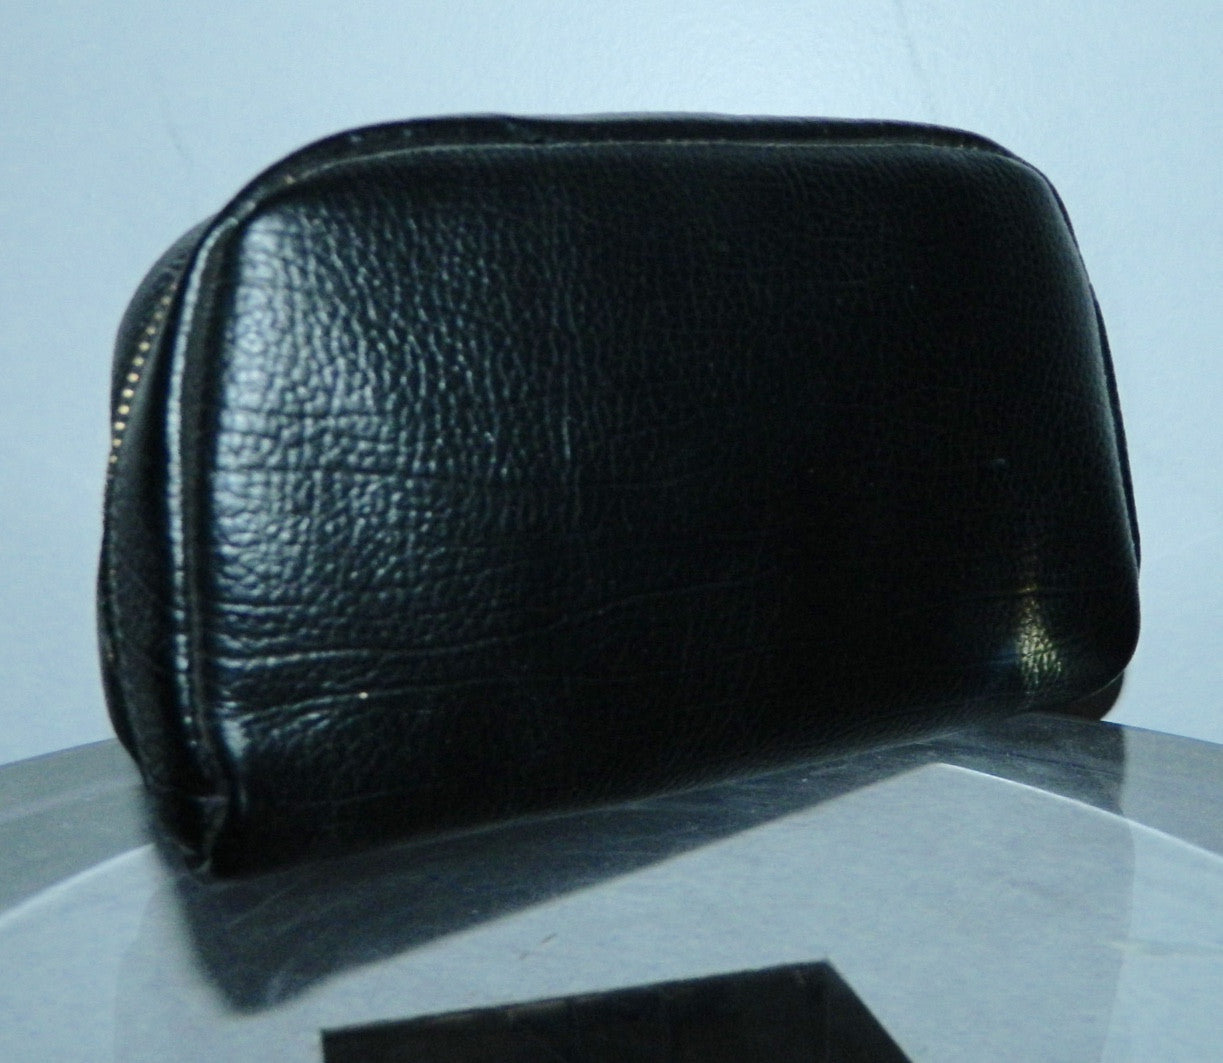 vintage black leather clutch bag PROPPER US Dopp kit pouch 1950s